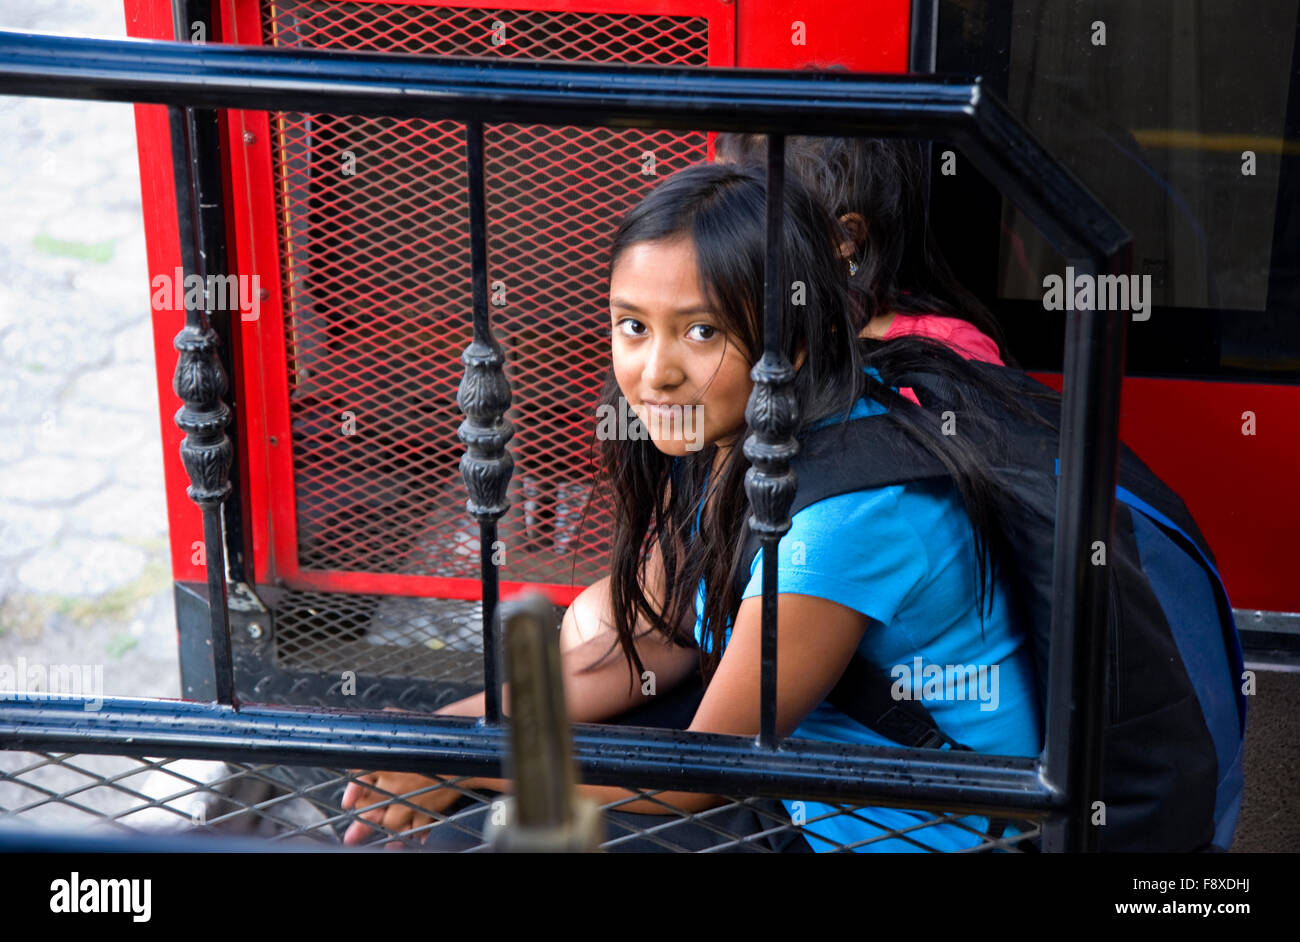 Young Ecuadoran girl on a train at the station in Ibarra. - Stock Image